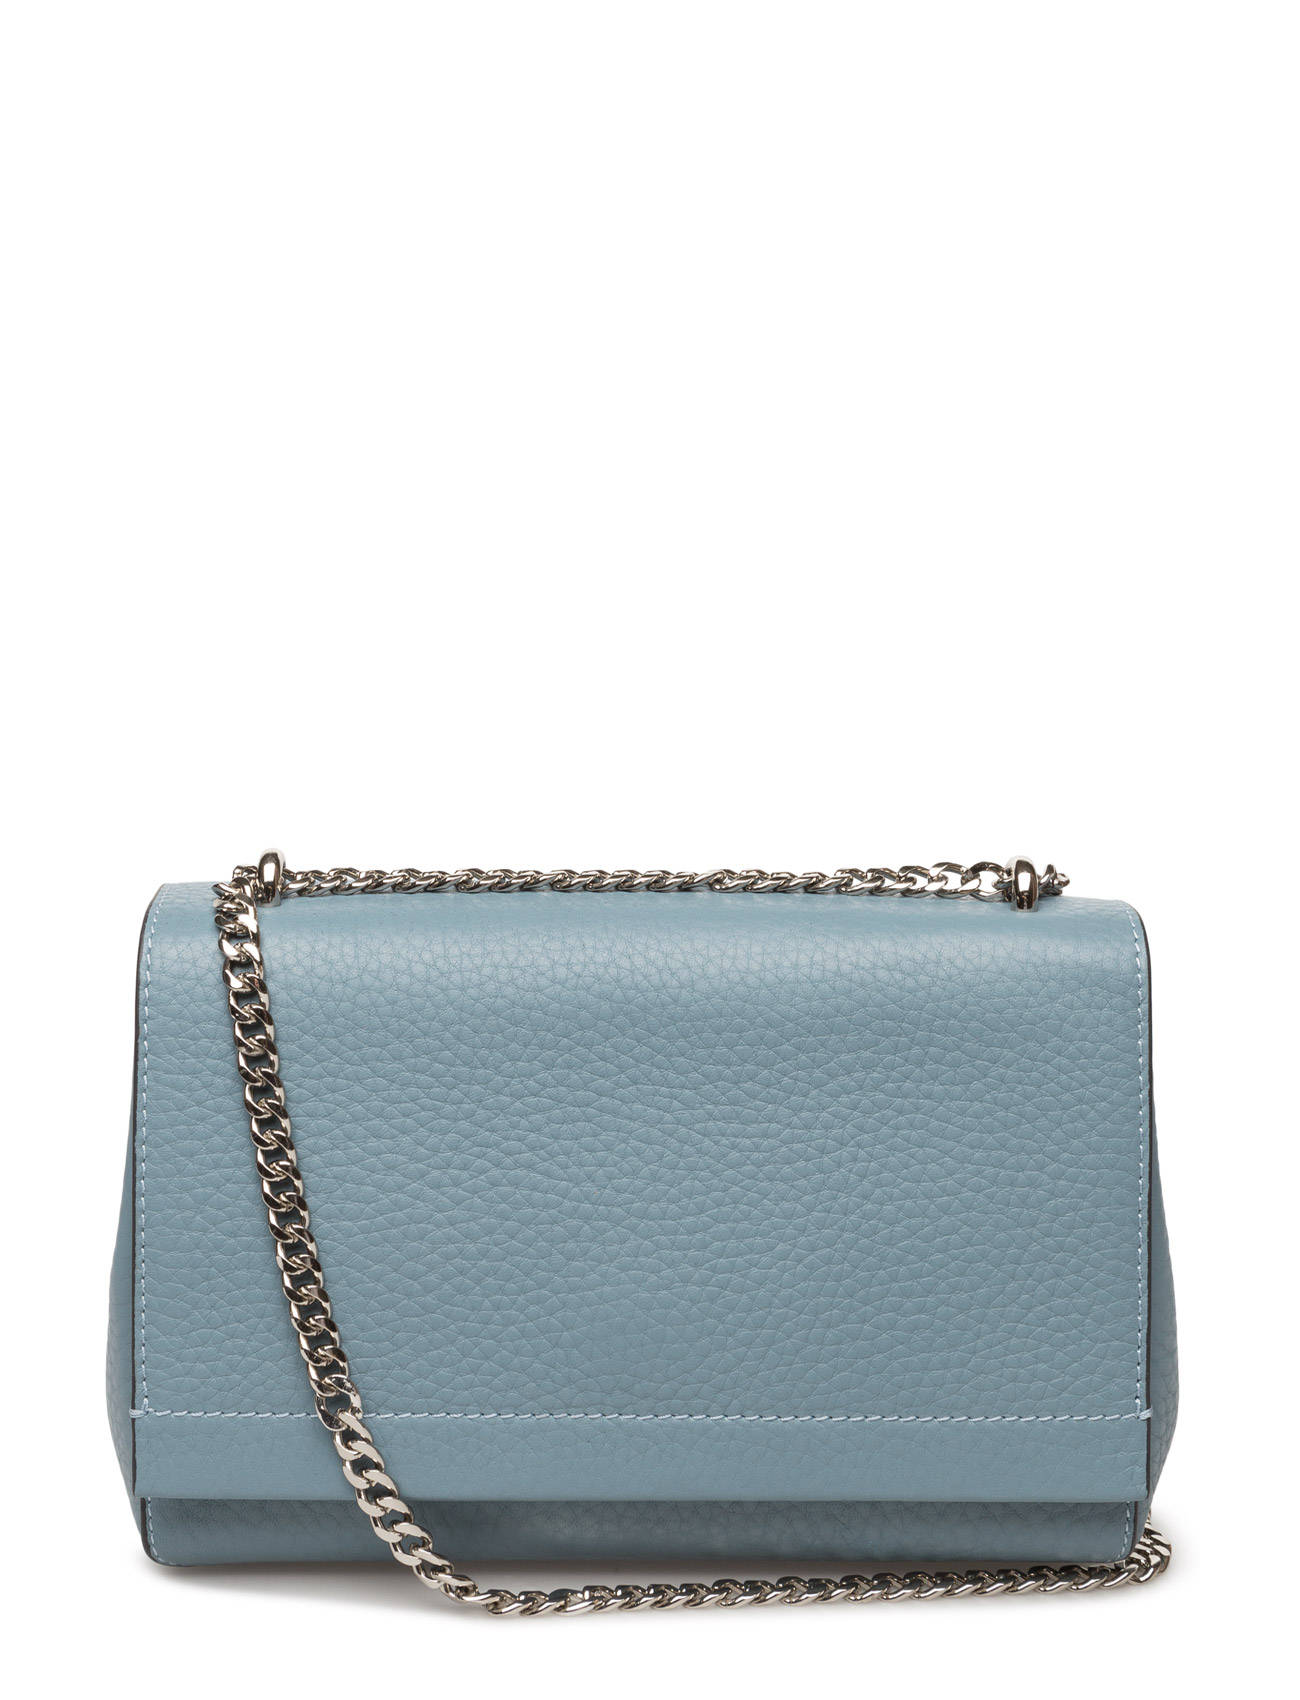 Decadent Small clutch with double chain